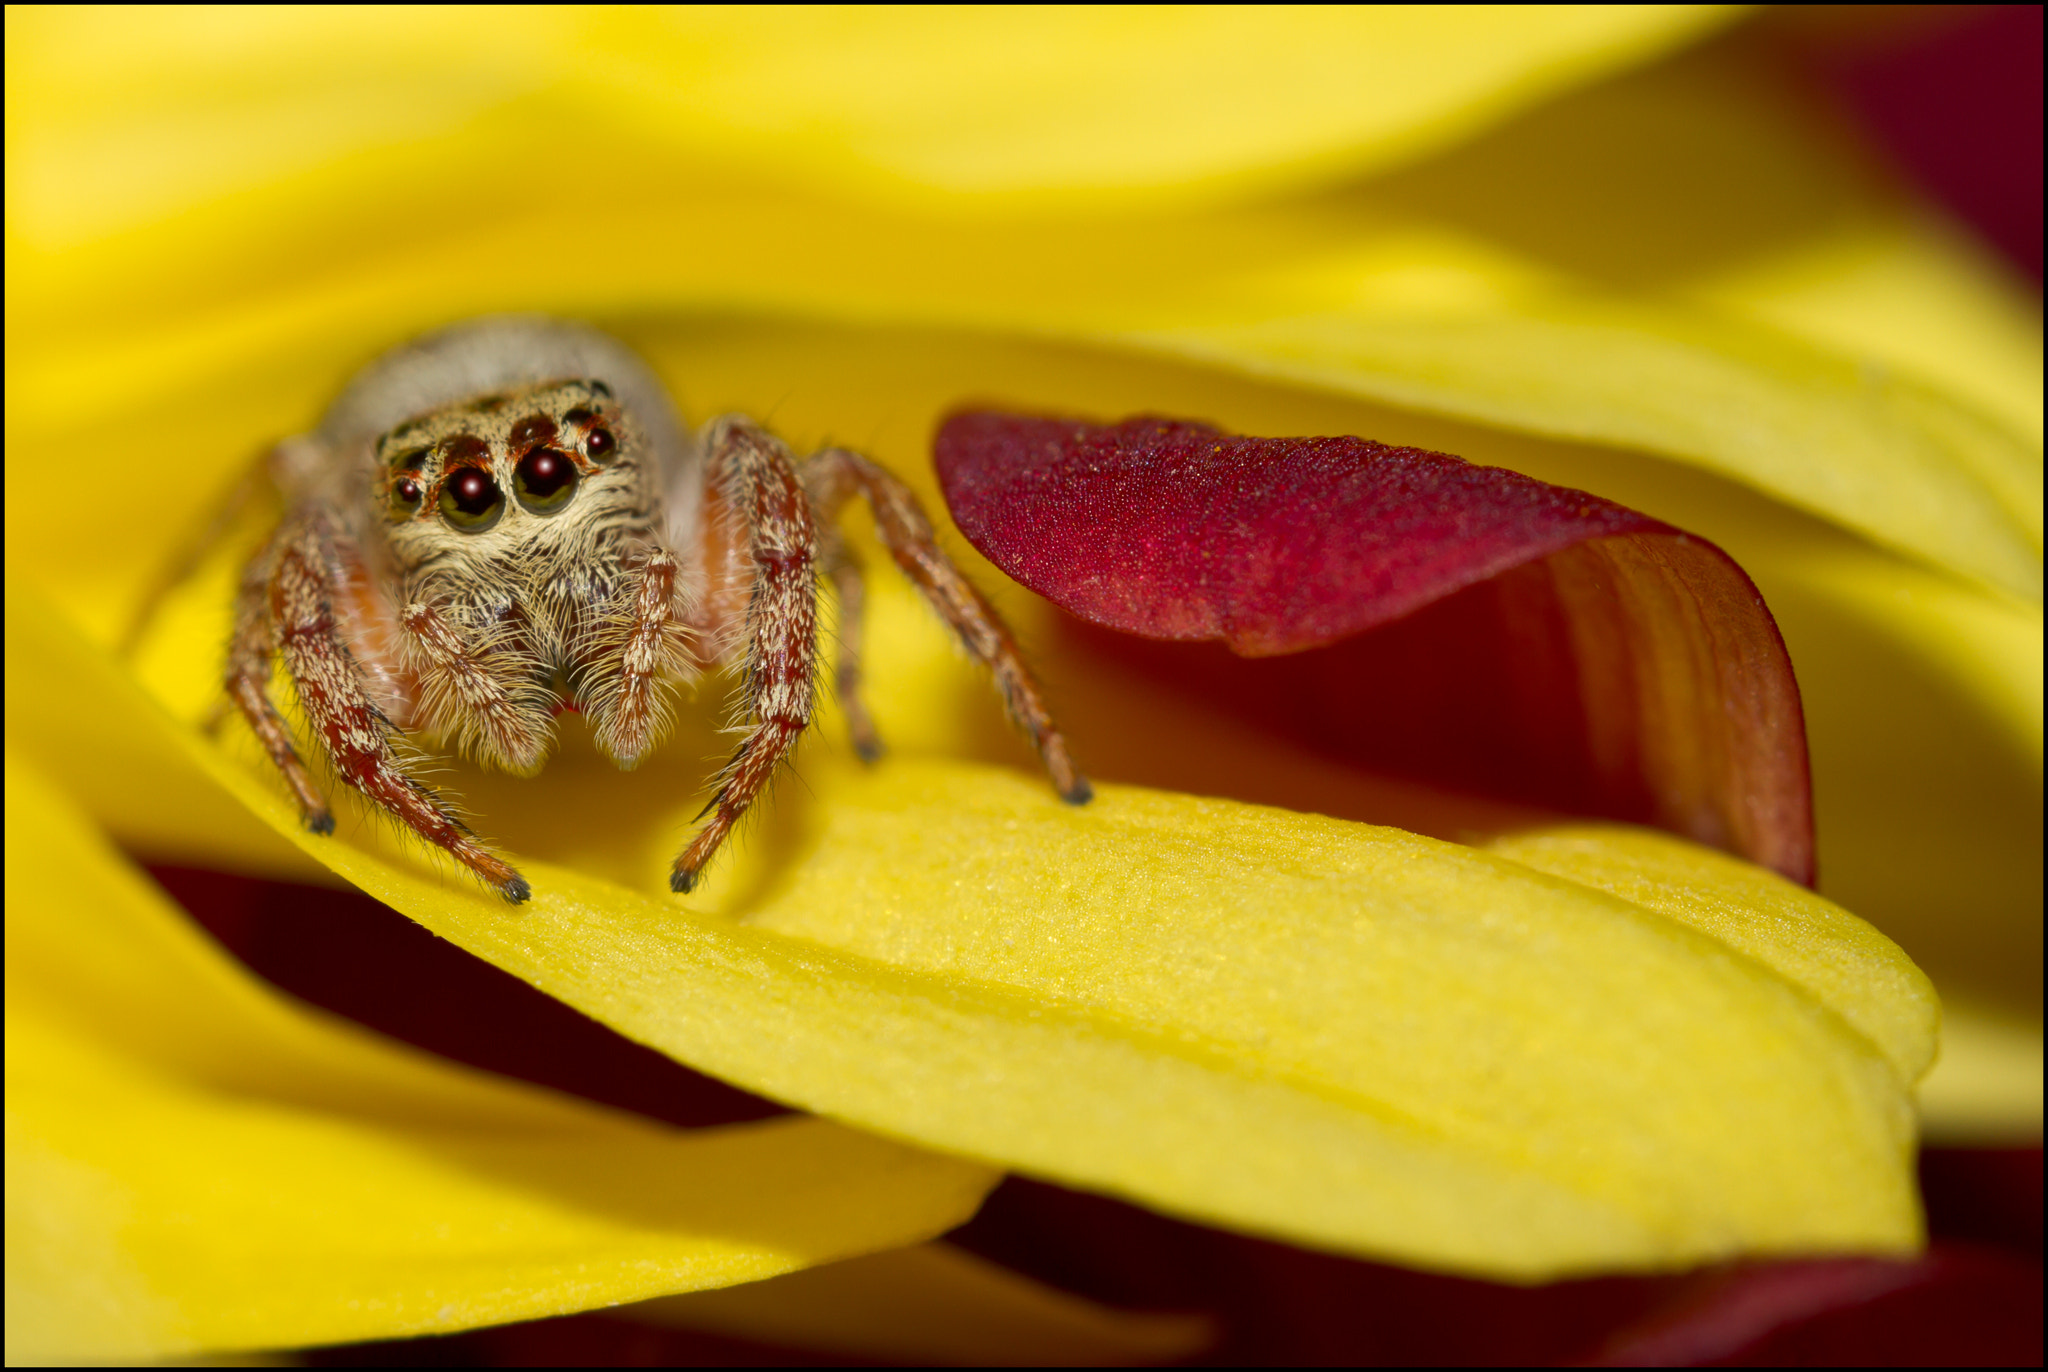 Photograph Jumping Spider - Lick by Steve Passlow on 500px